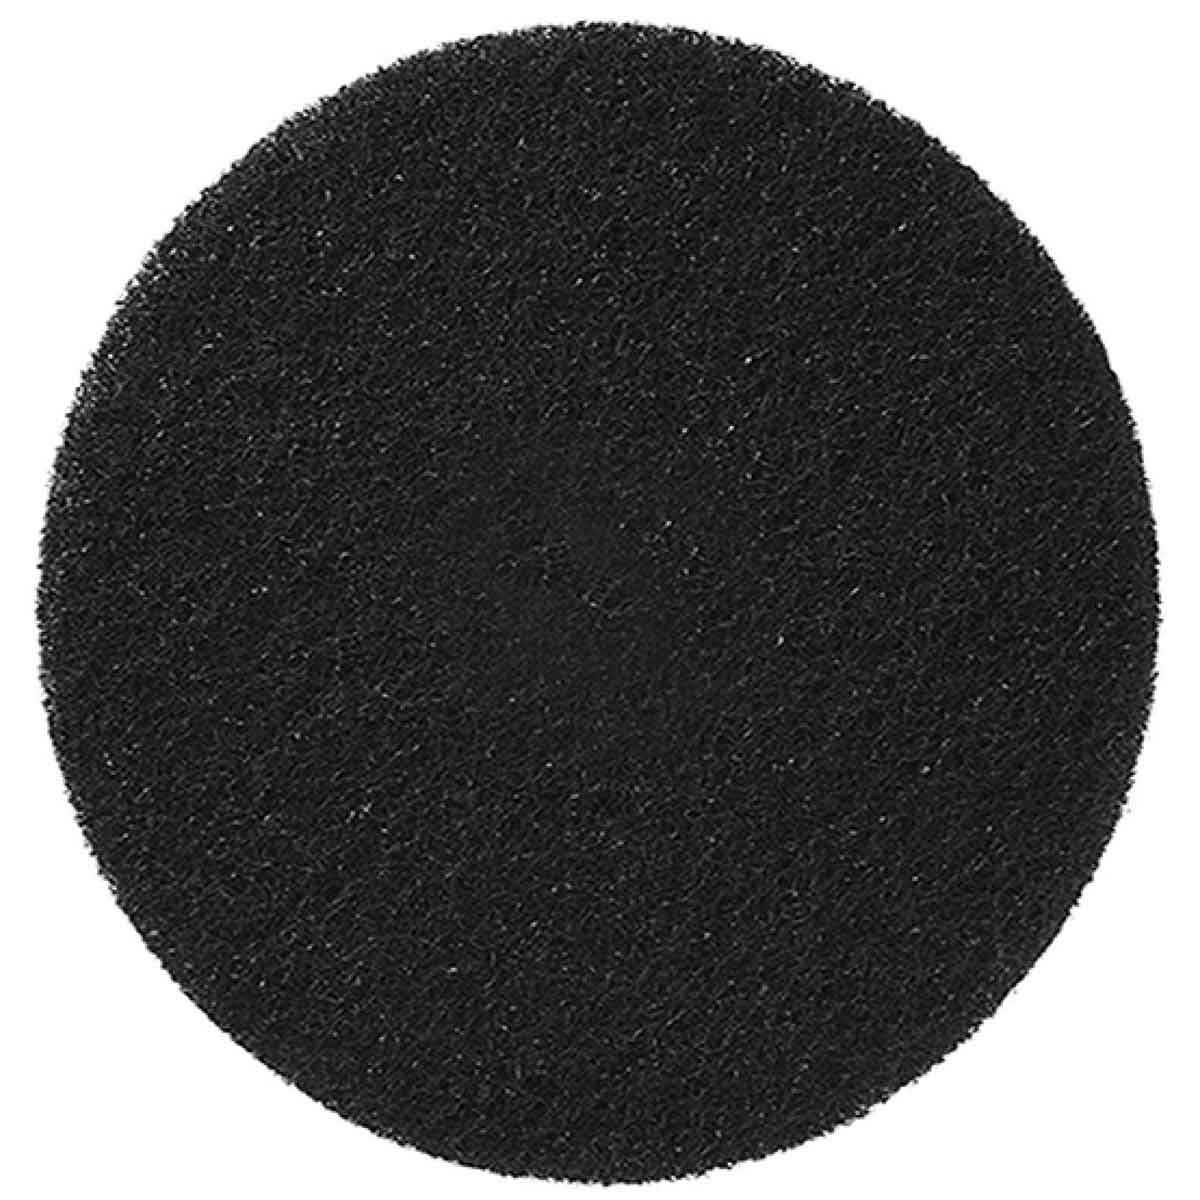 Raimondi Black Coarse Floor Pad